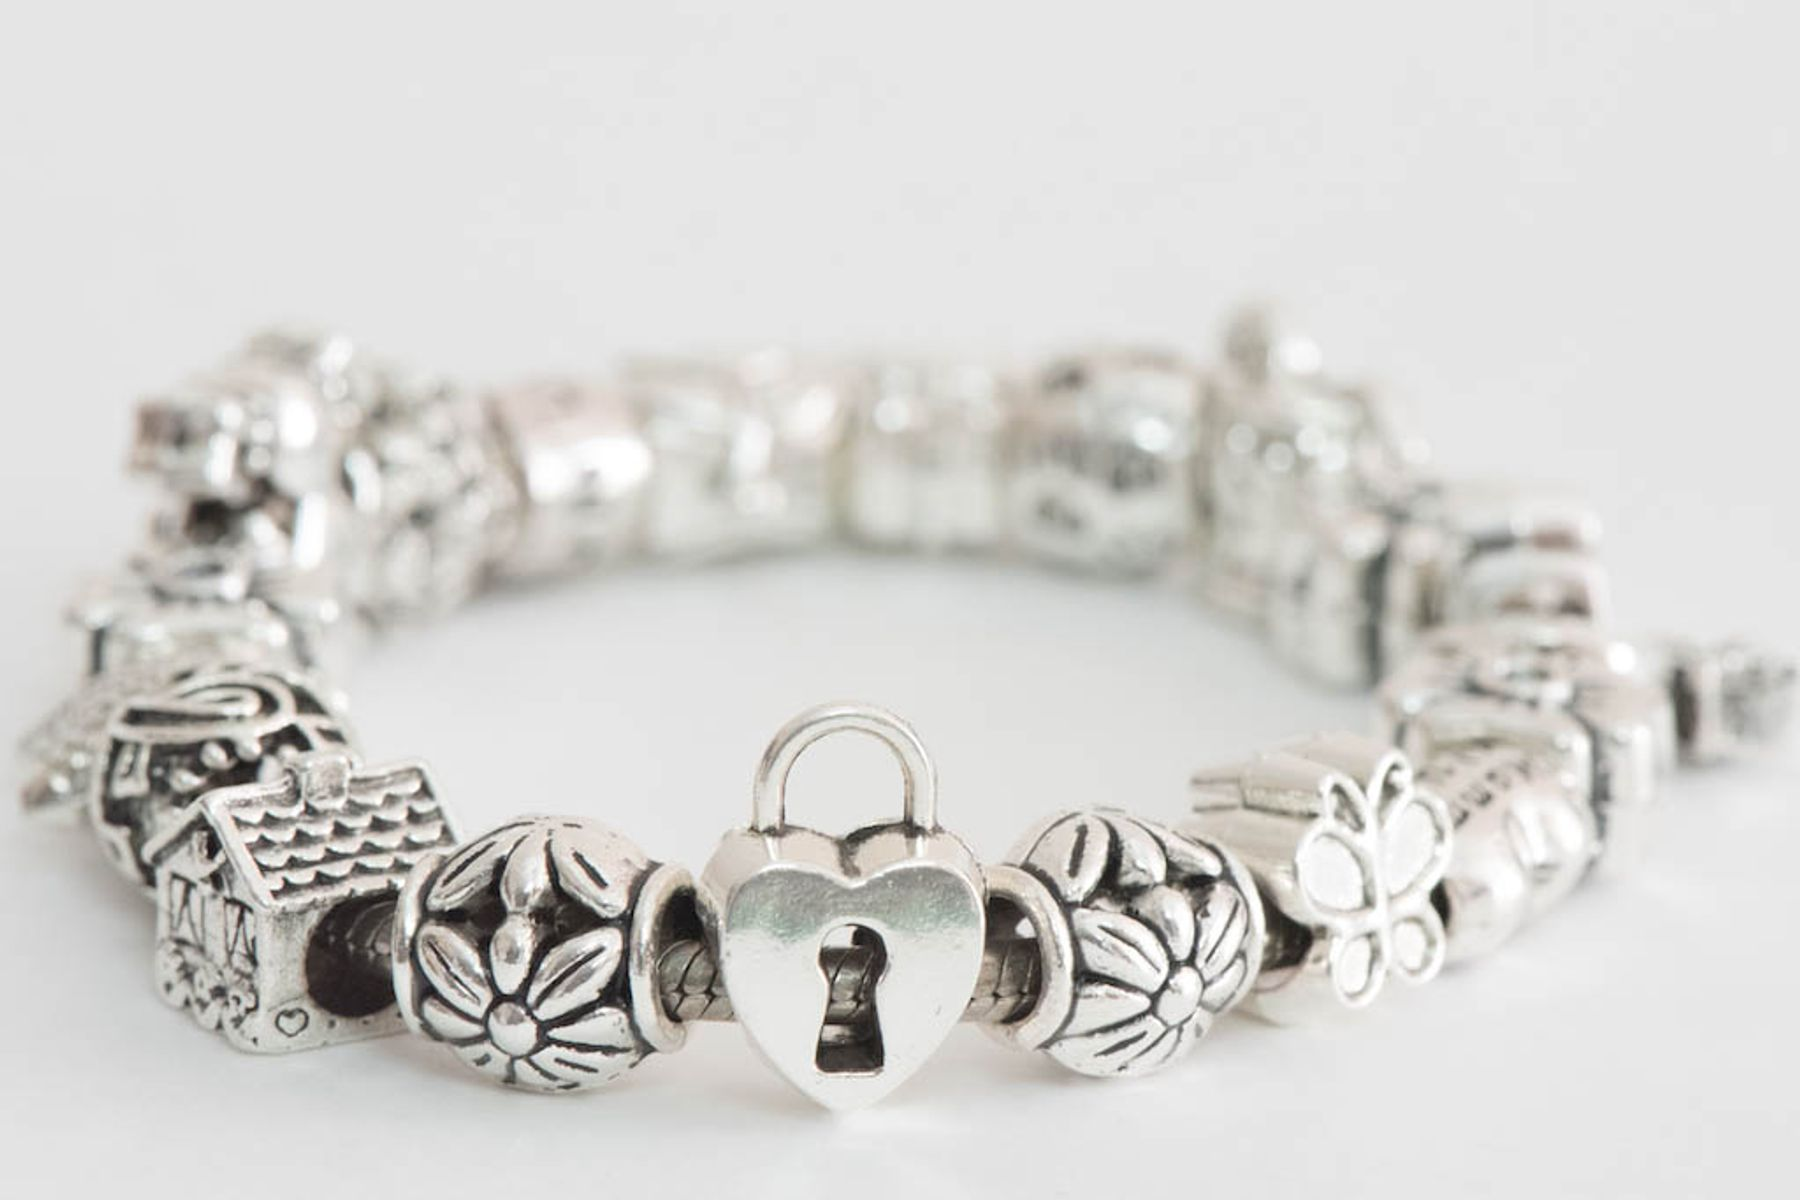 simple shot of a silver pandora bracelet with charms